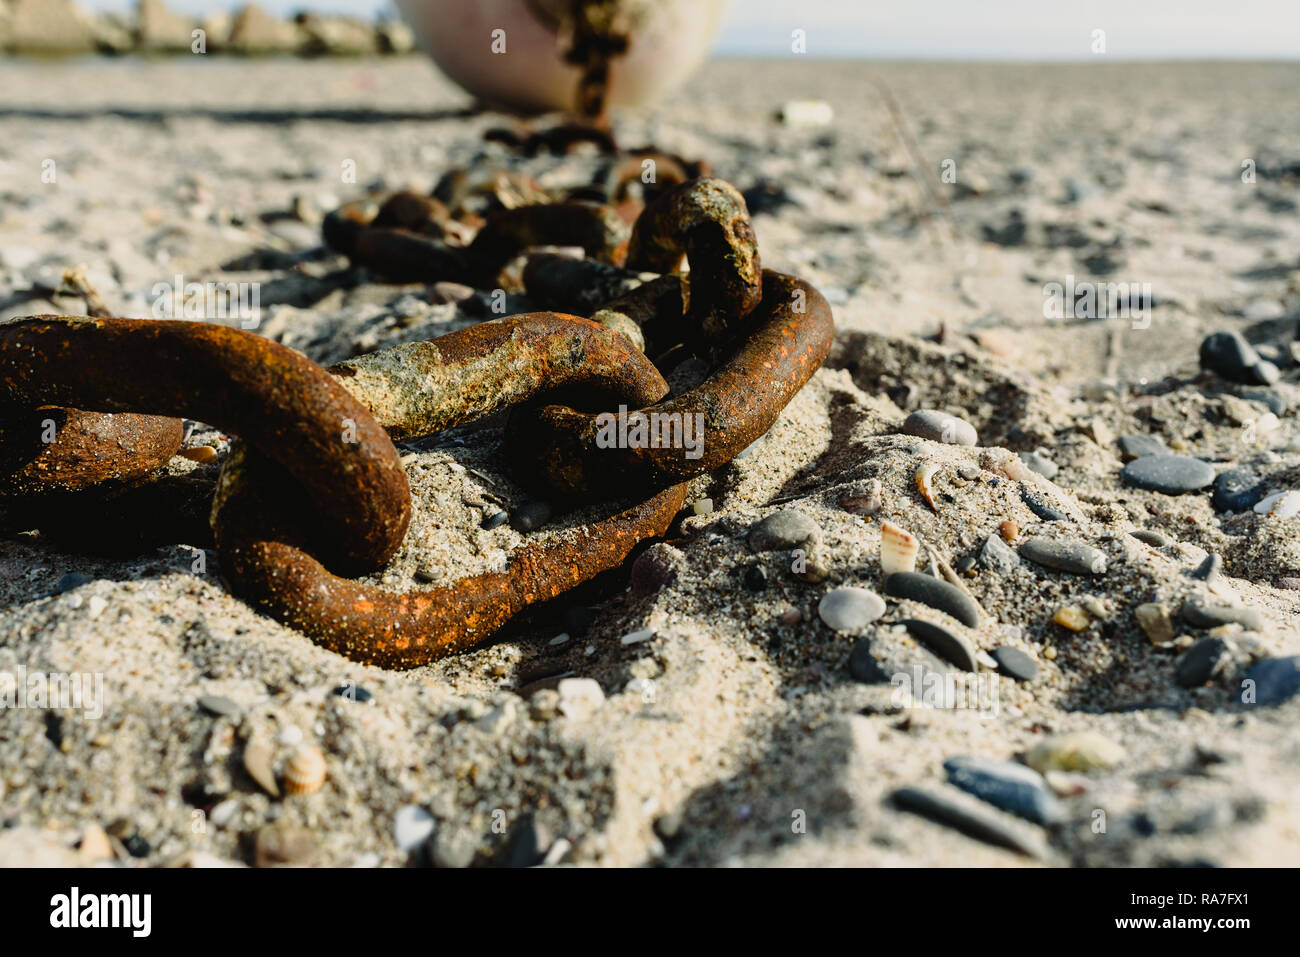 Concept of abandonment, old rusty and broken chains thrown in the sand of a dirty beach. - Stock Image